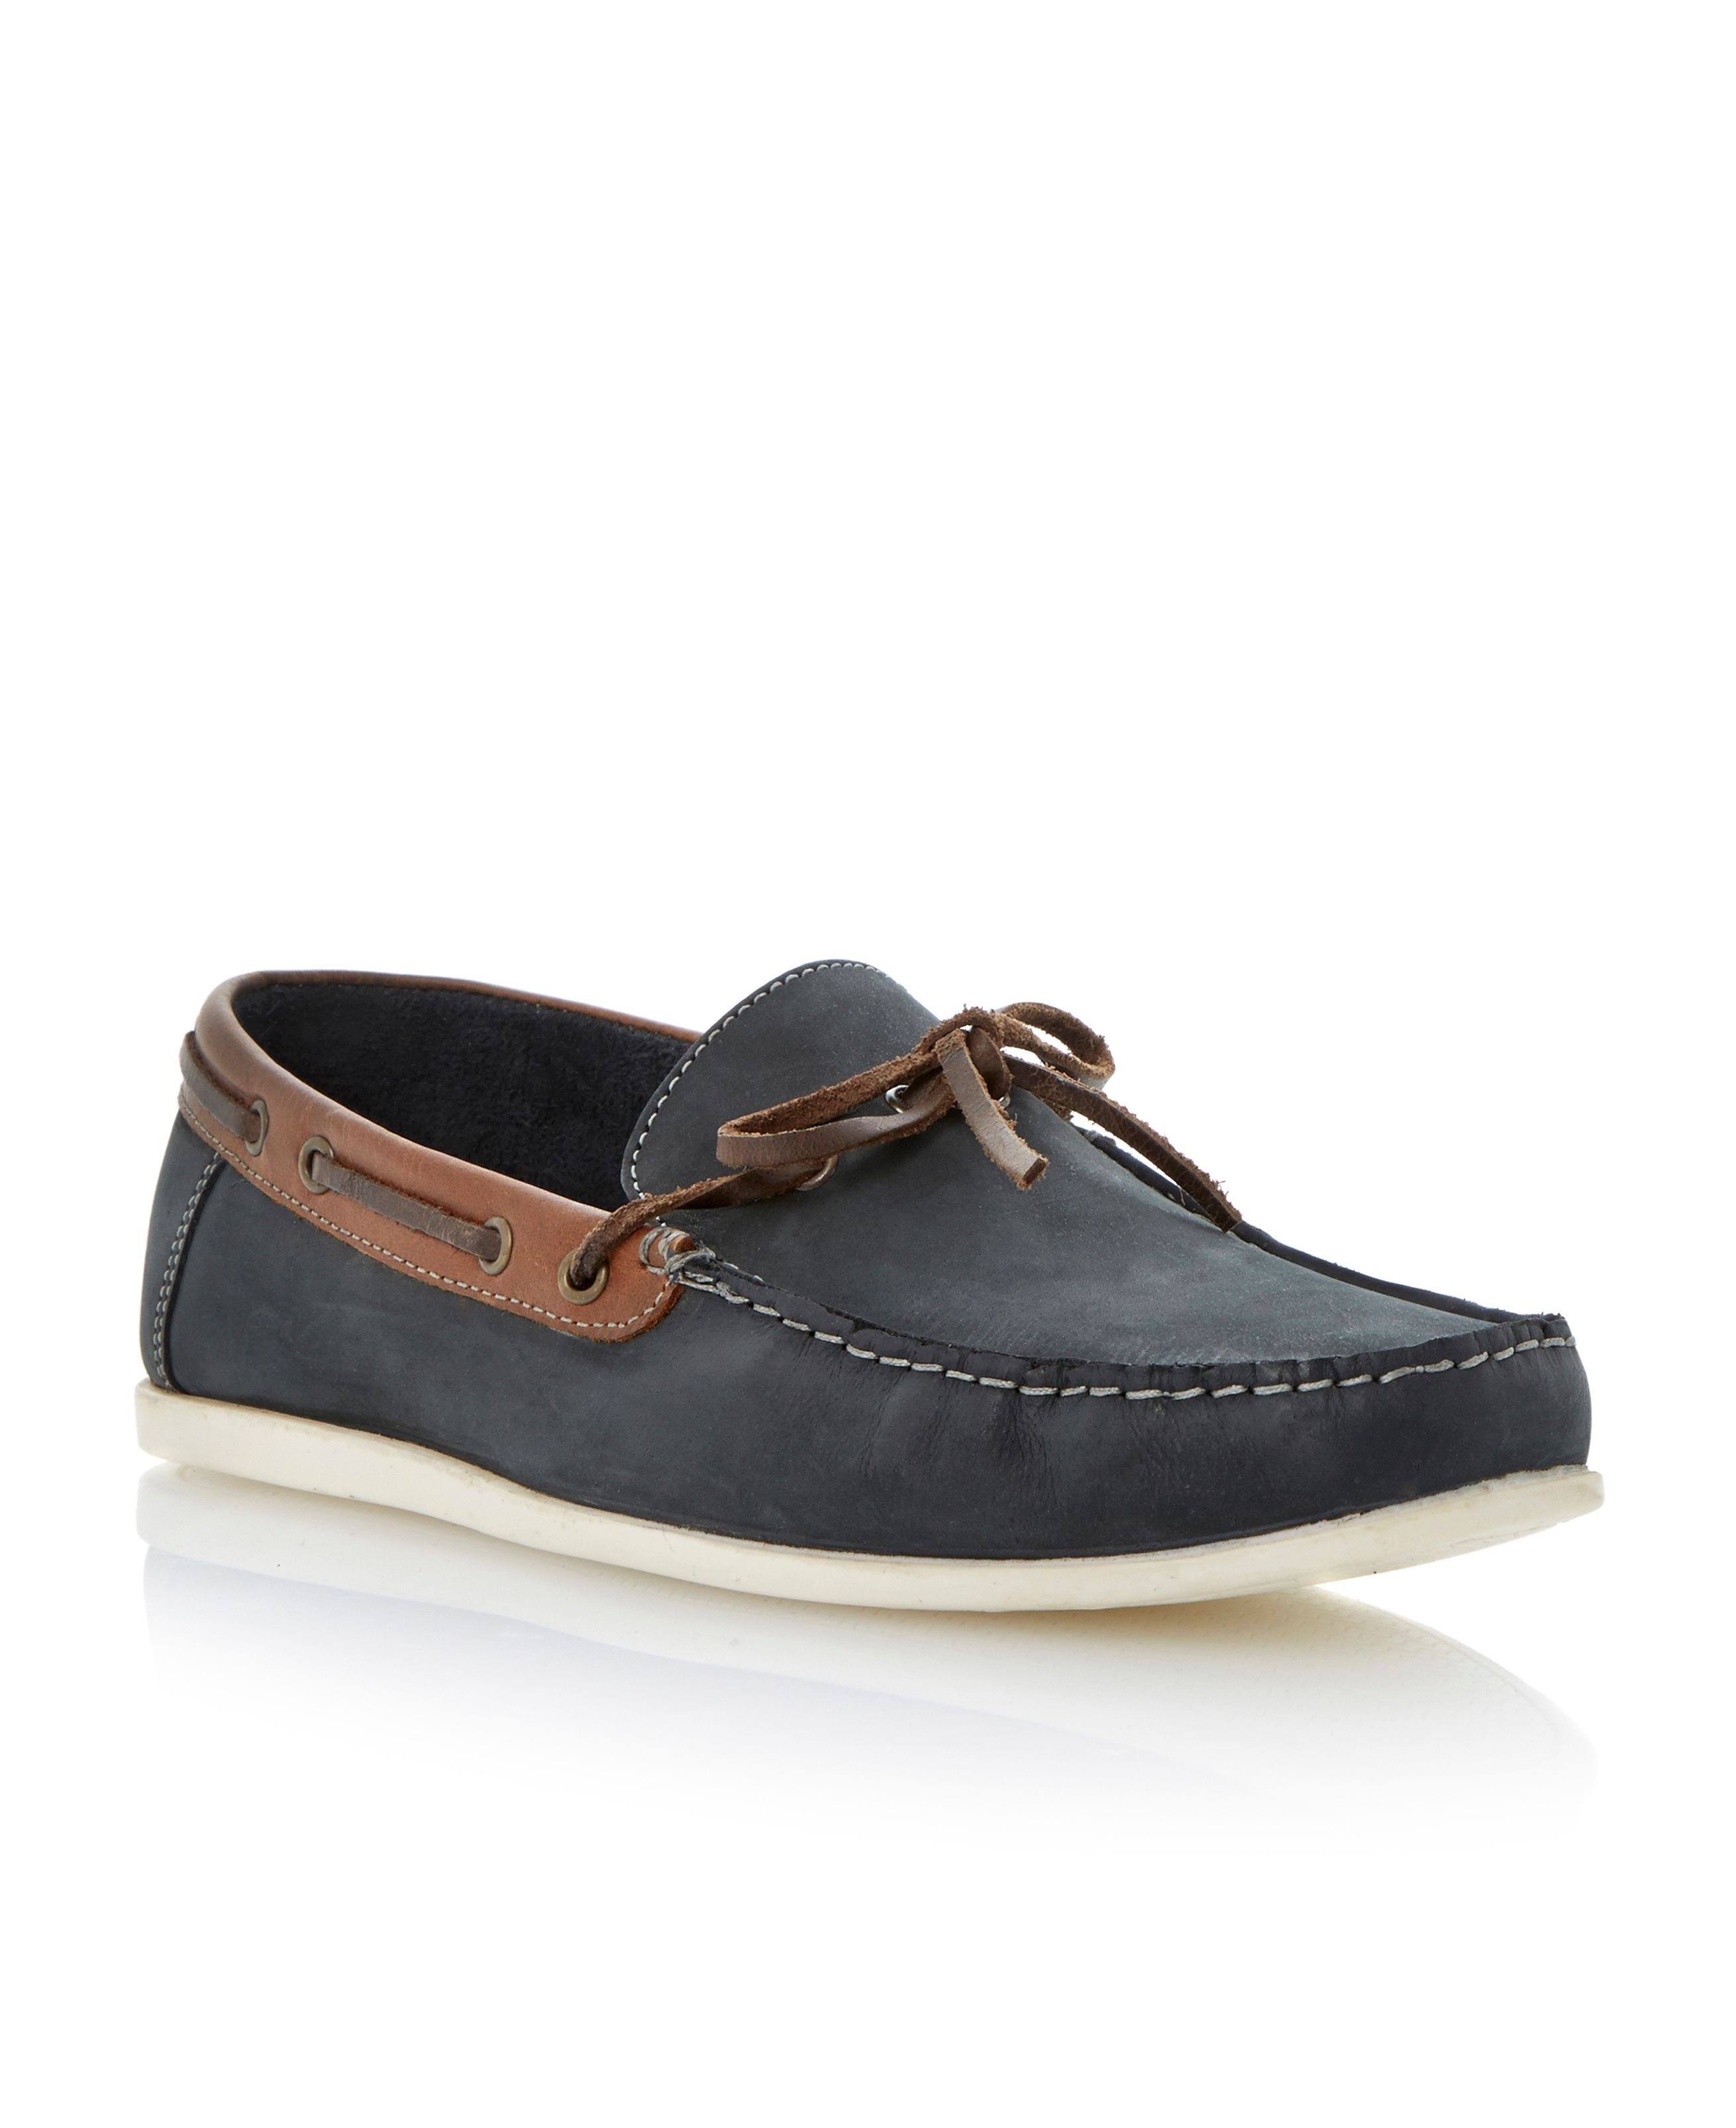 Boardwalk boat lace loafers